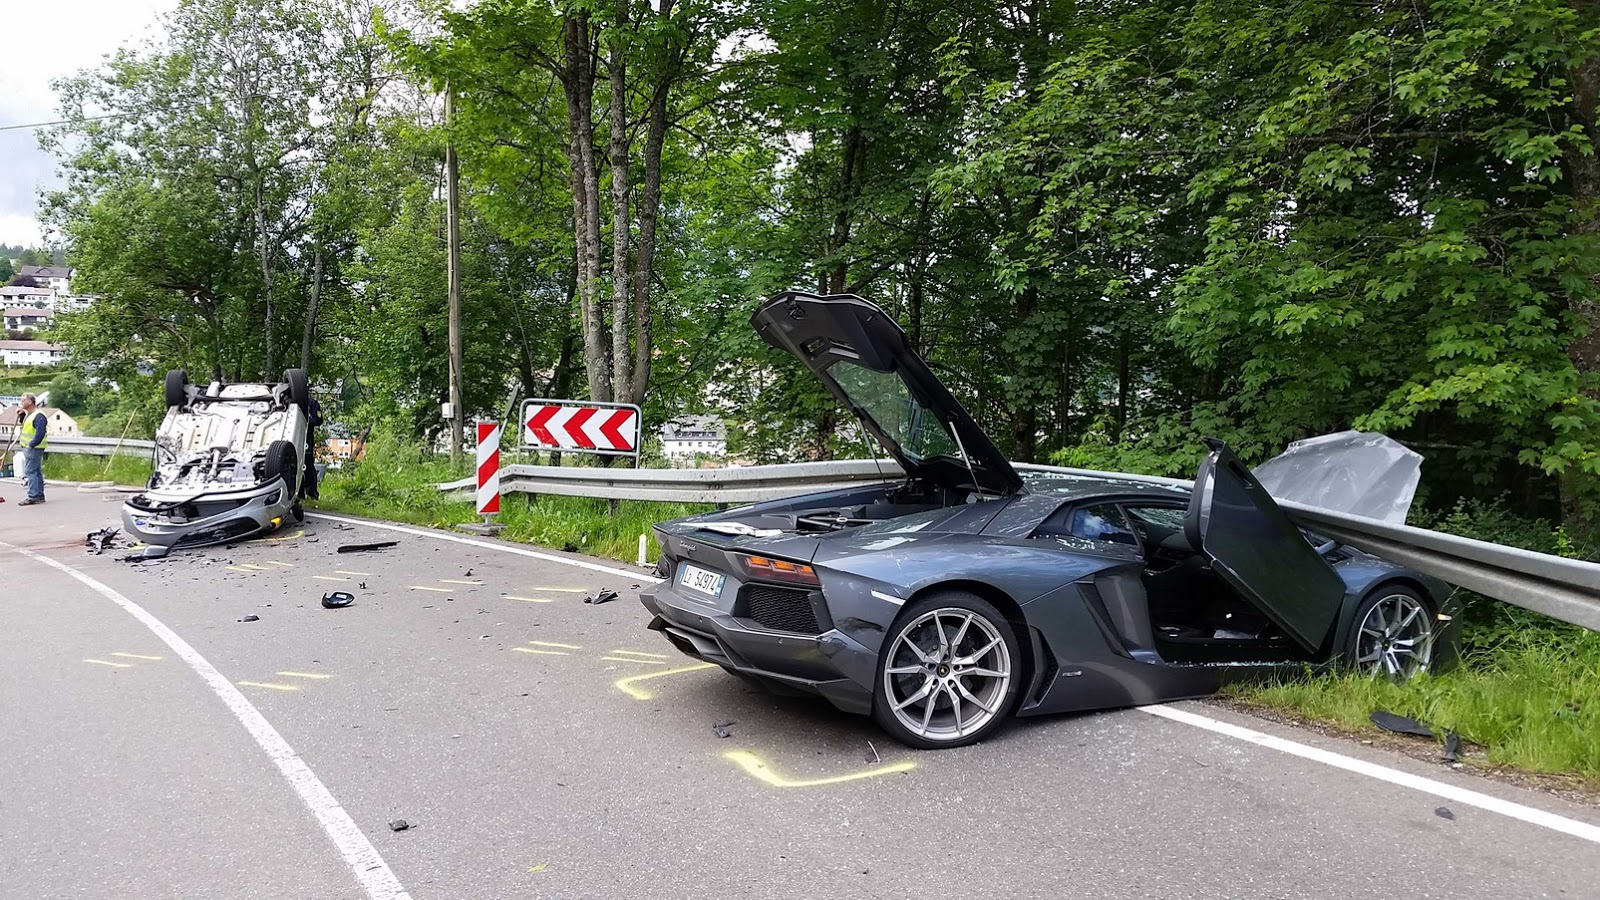 Morgan Three Wheeler For Sale >> Silver Lamborghini Aventador Crashes in Germany - GTspirit